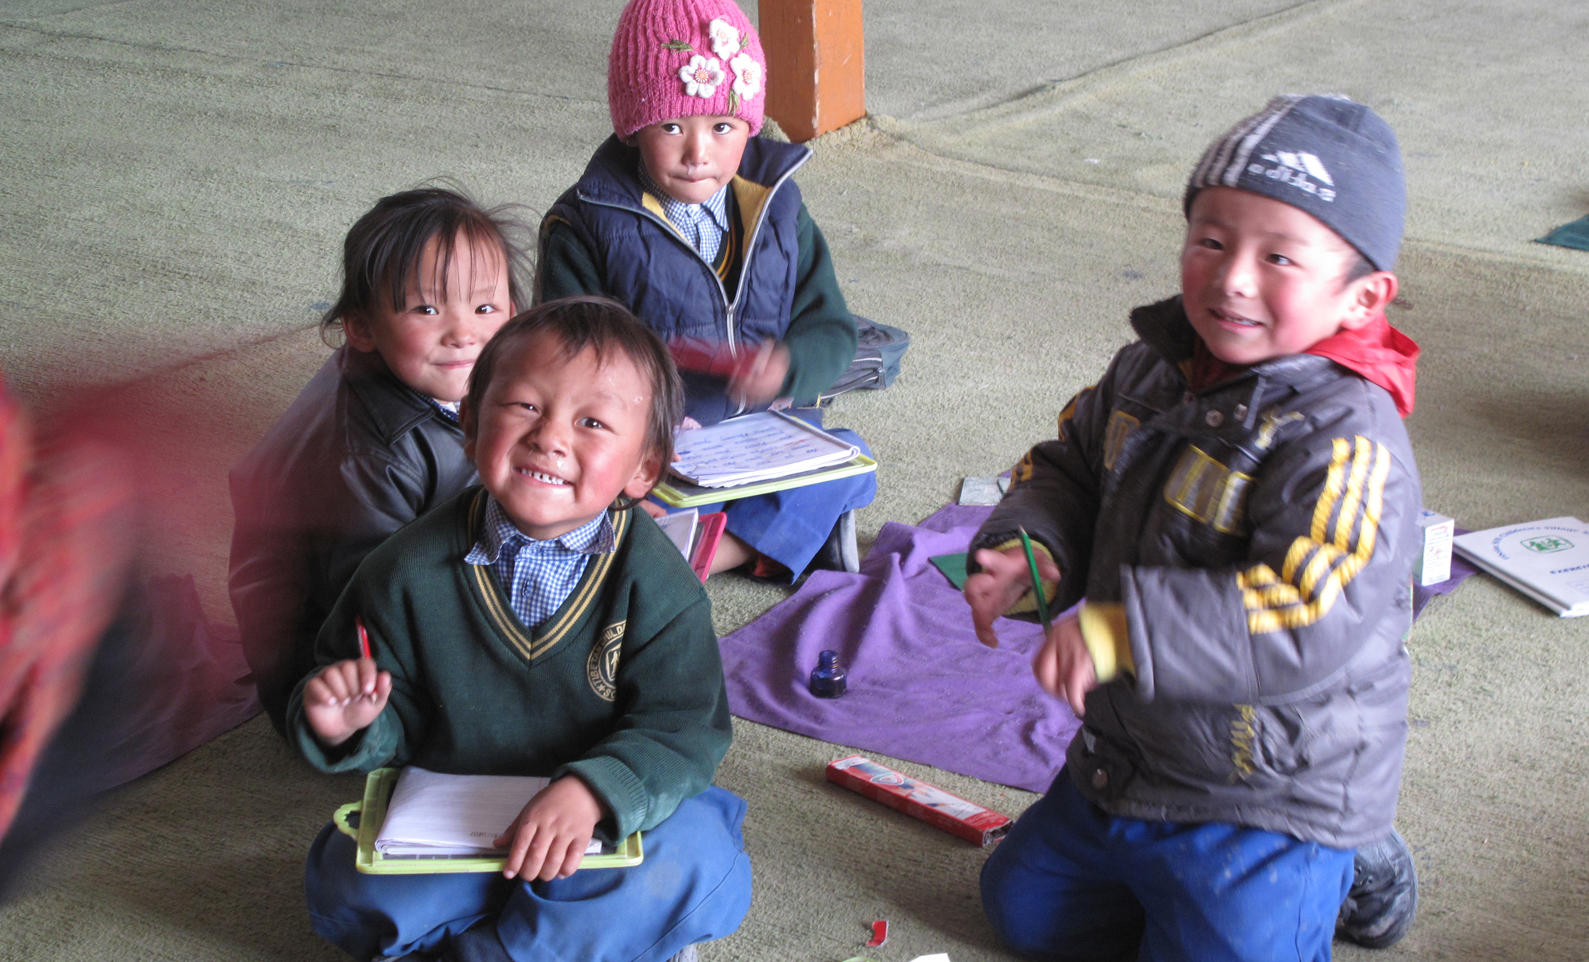 Canada grants C$ 5.4 million for exile Tibetans' education